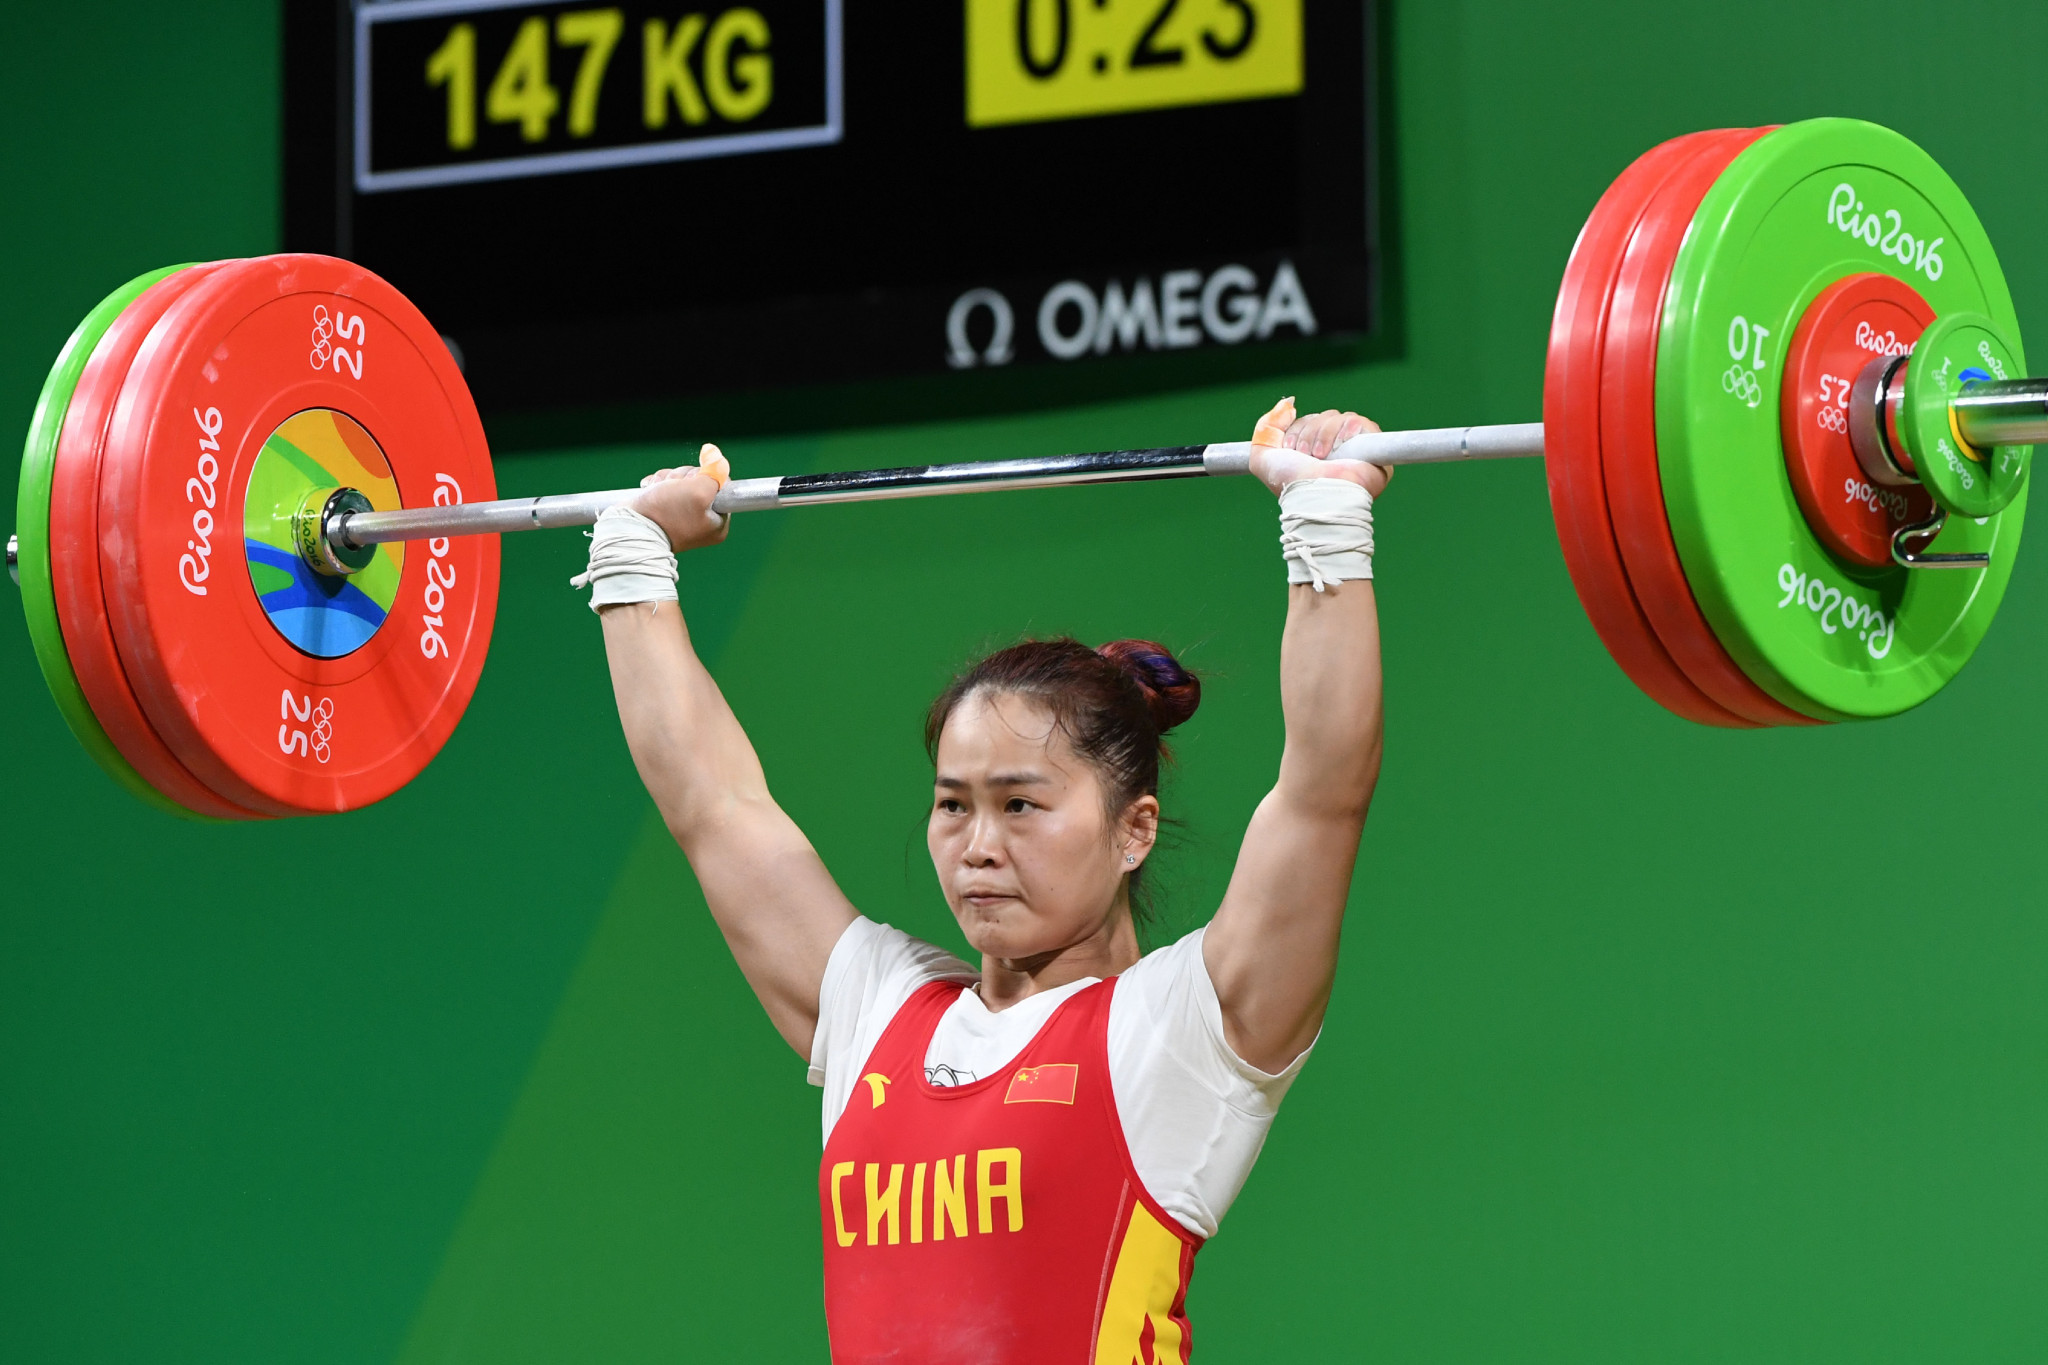 Performances from the likes of Deng Wei have been among weightlifting's plus points ©Getty Images